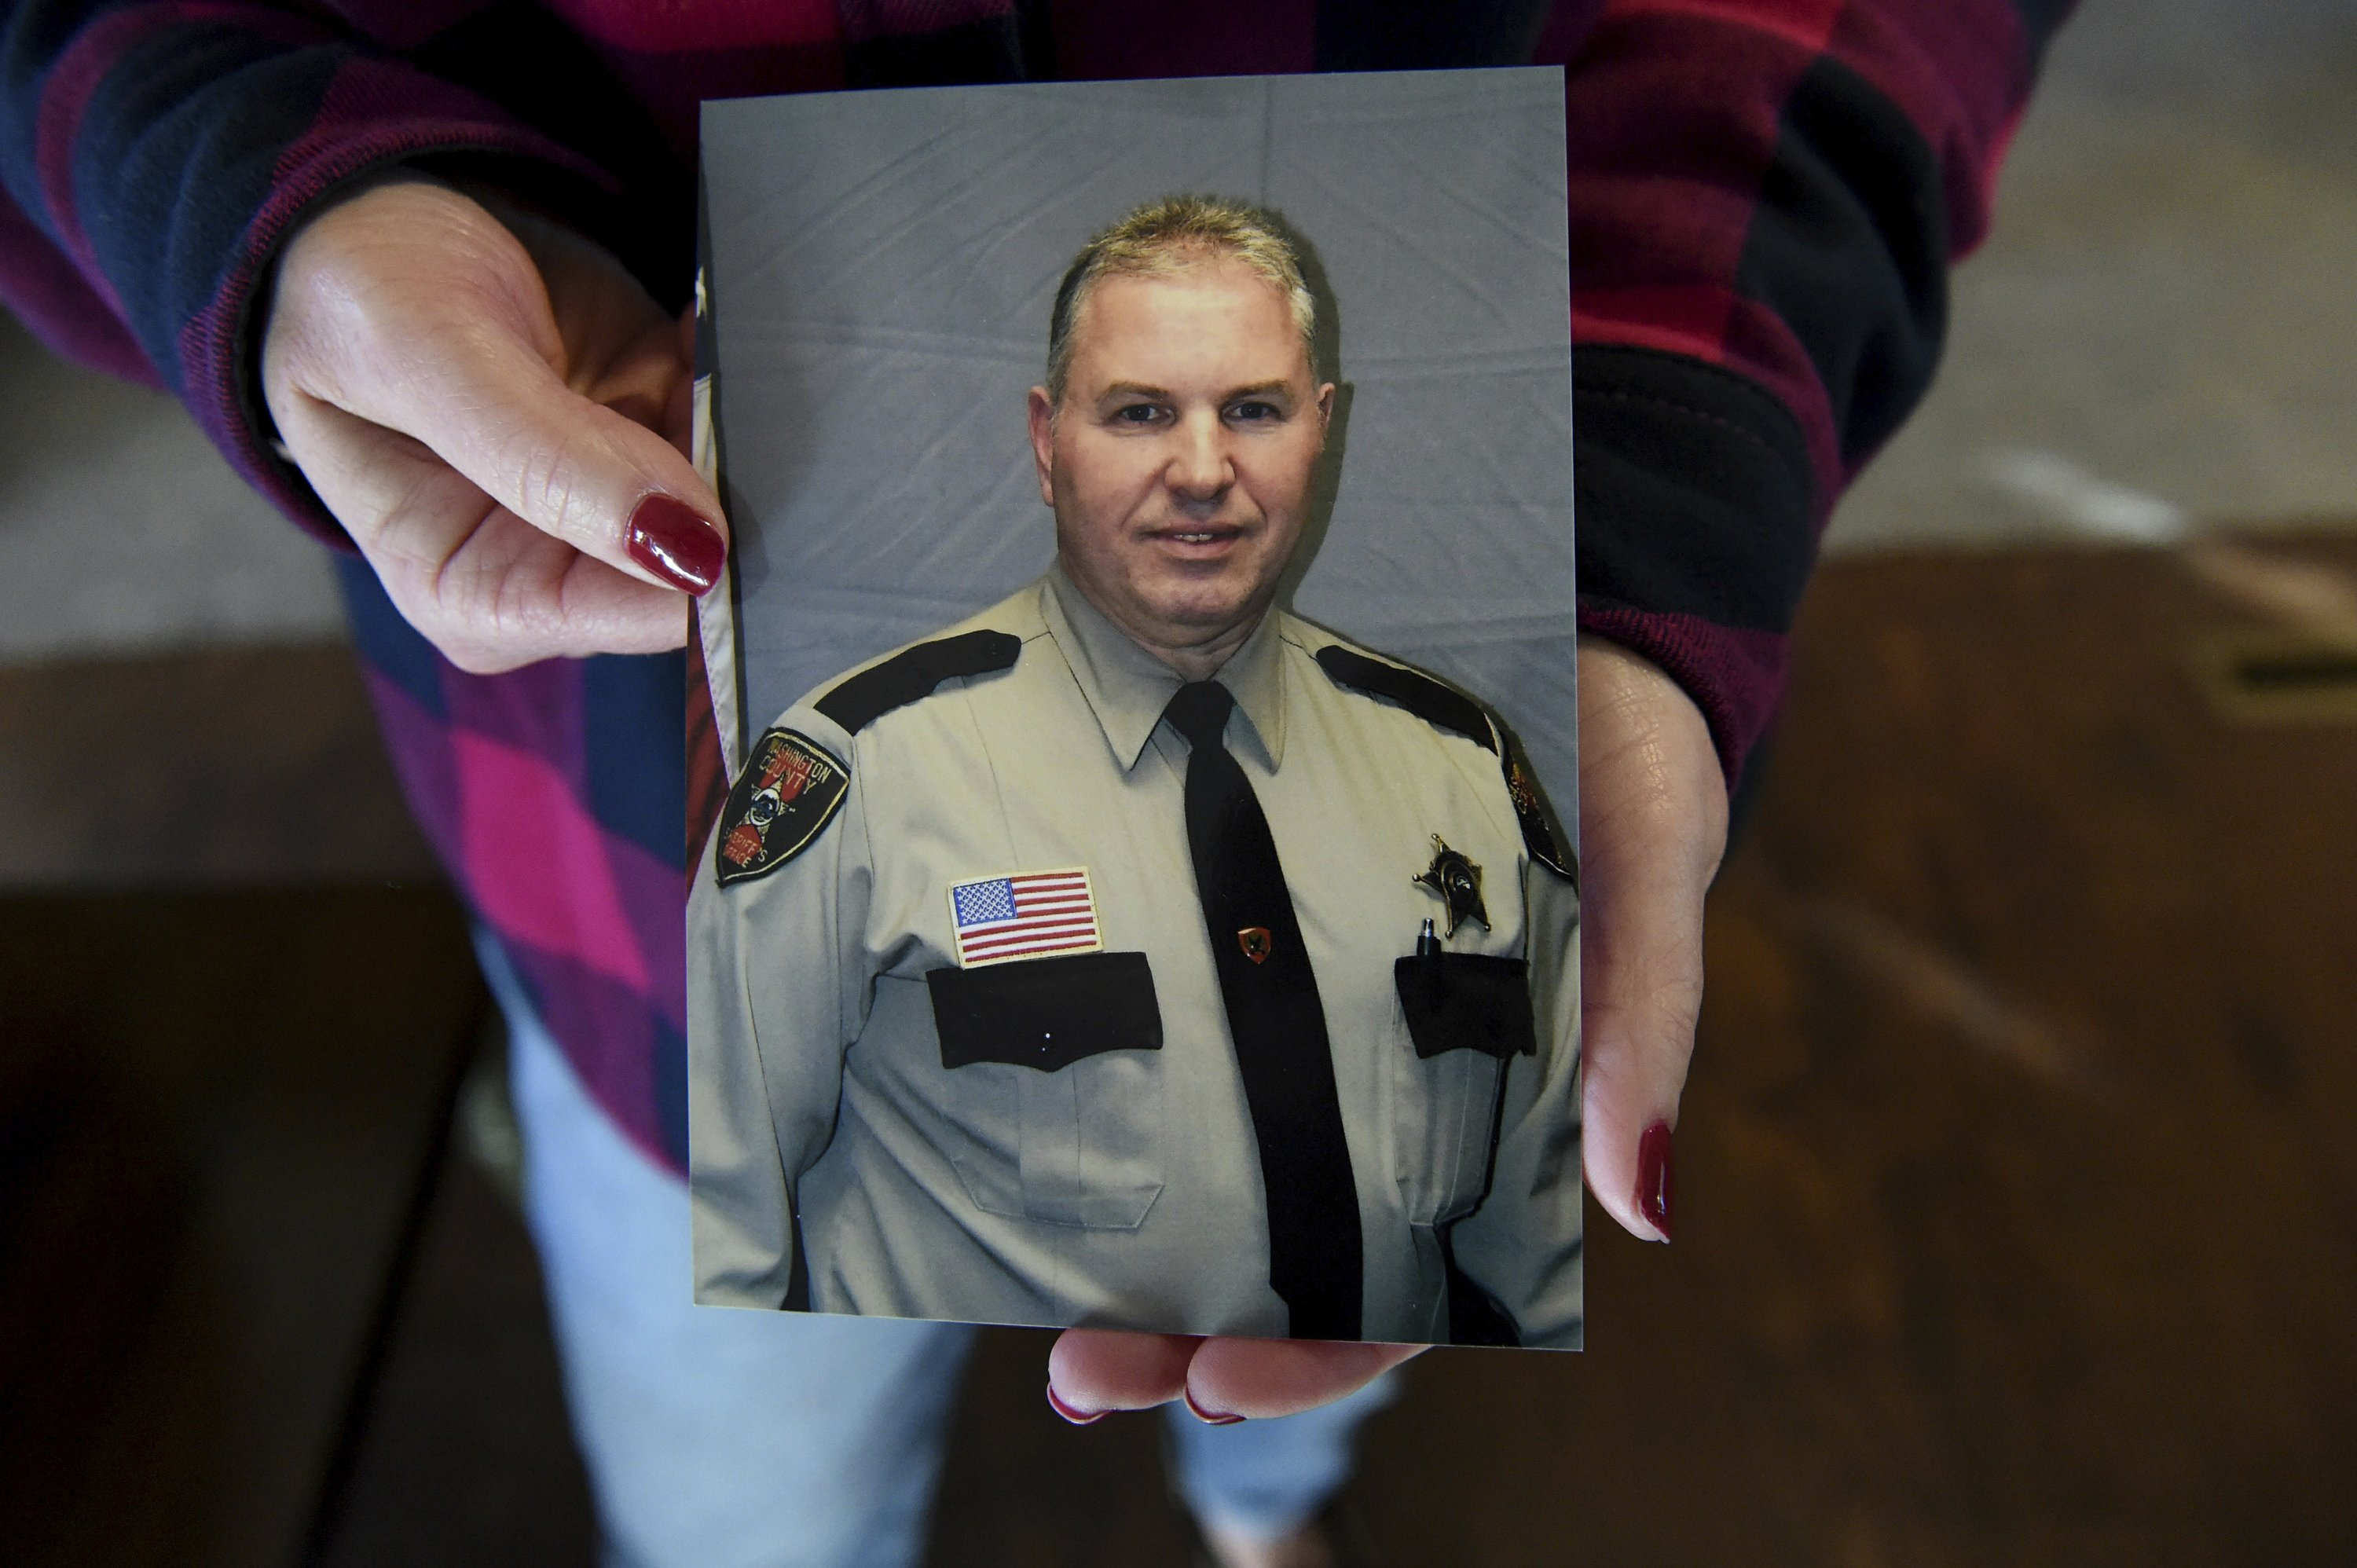 Widow of sheriff's deputy speaks out about mental illness